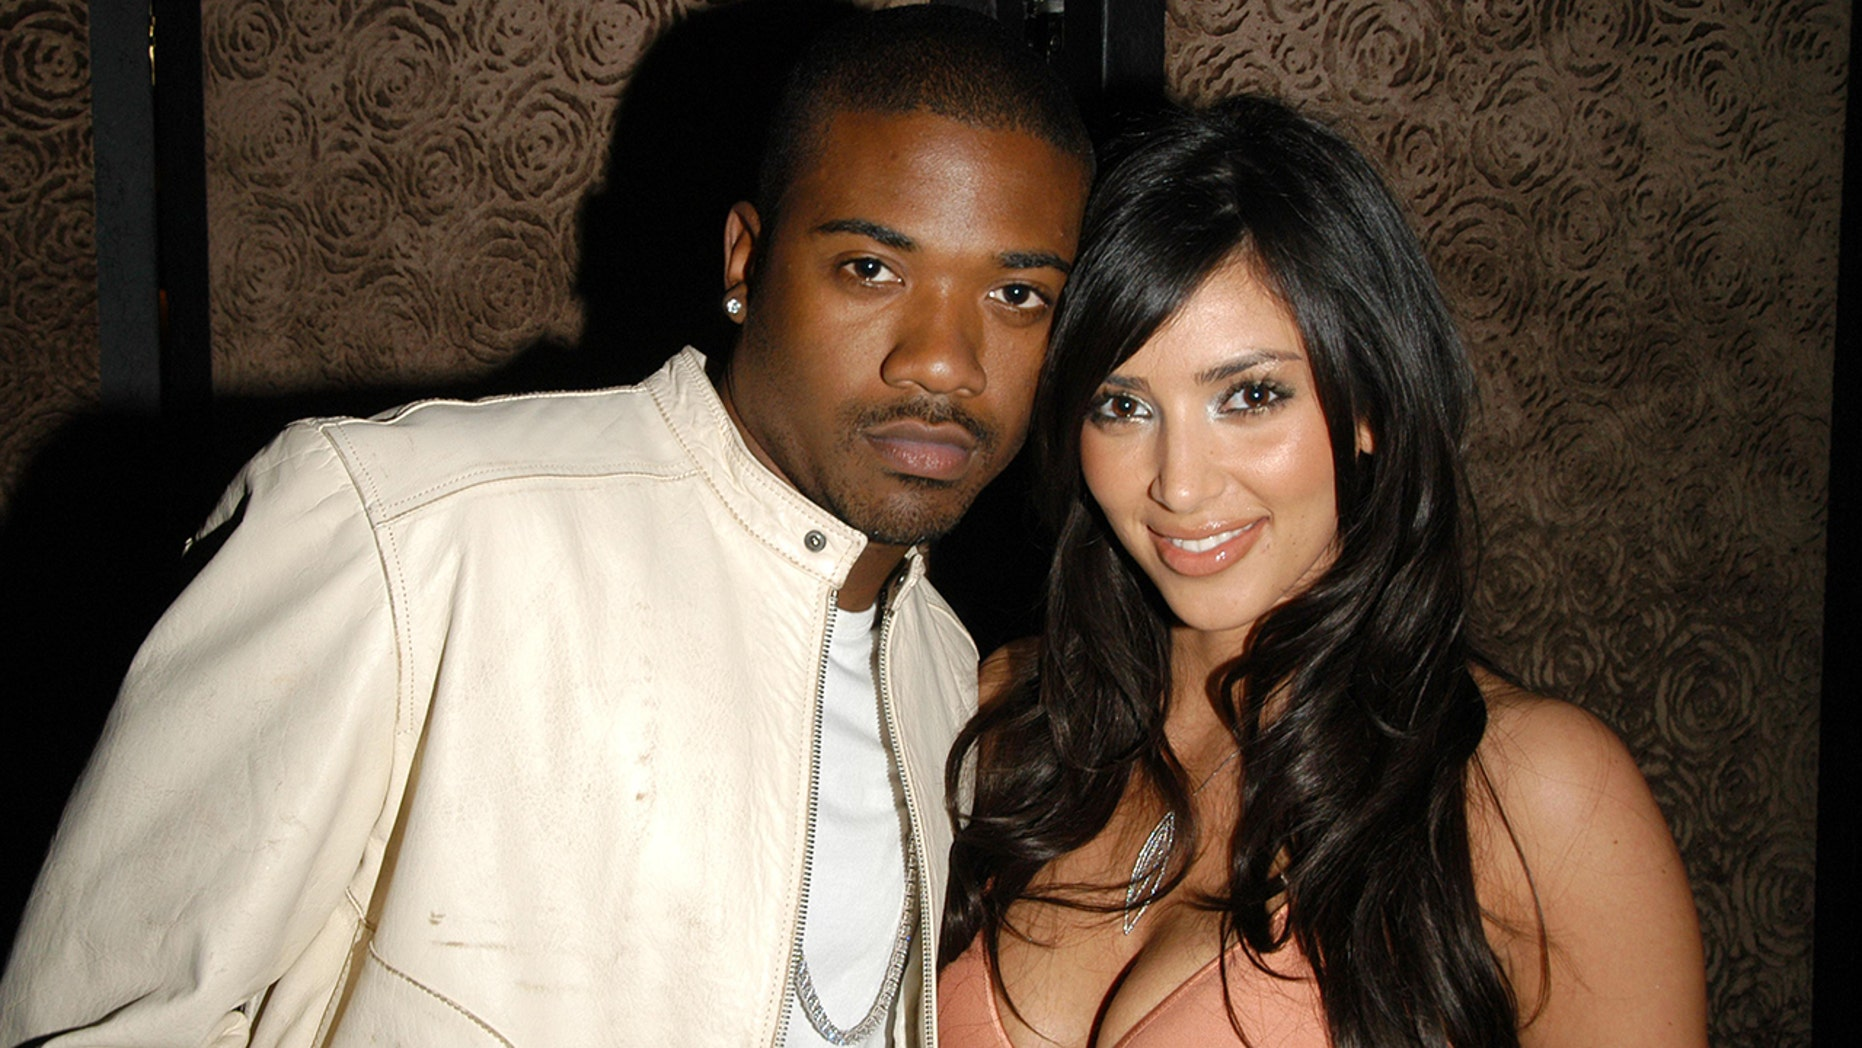 Watch ray j and kim kardashian sex tape online clearly